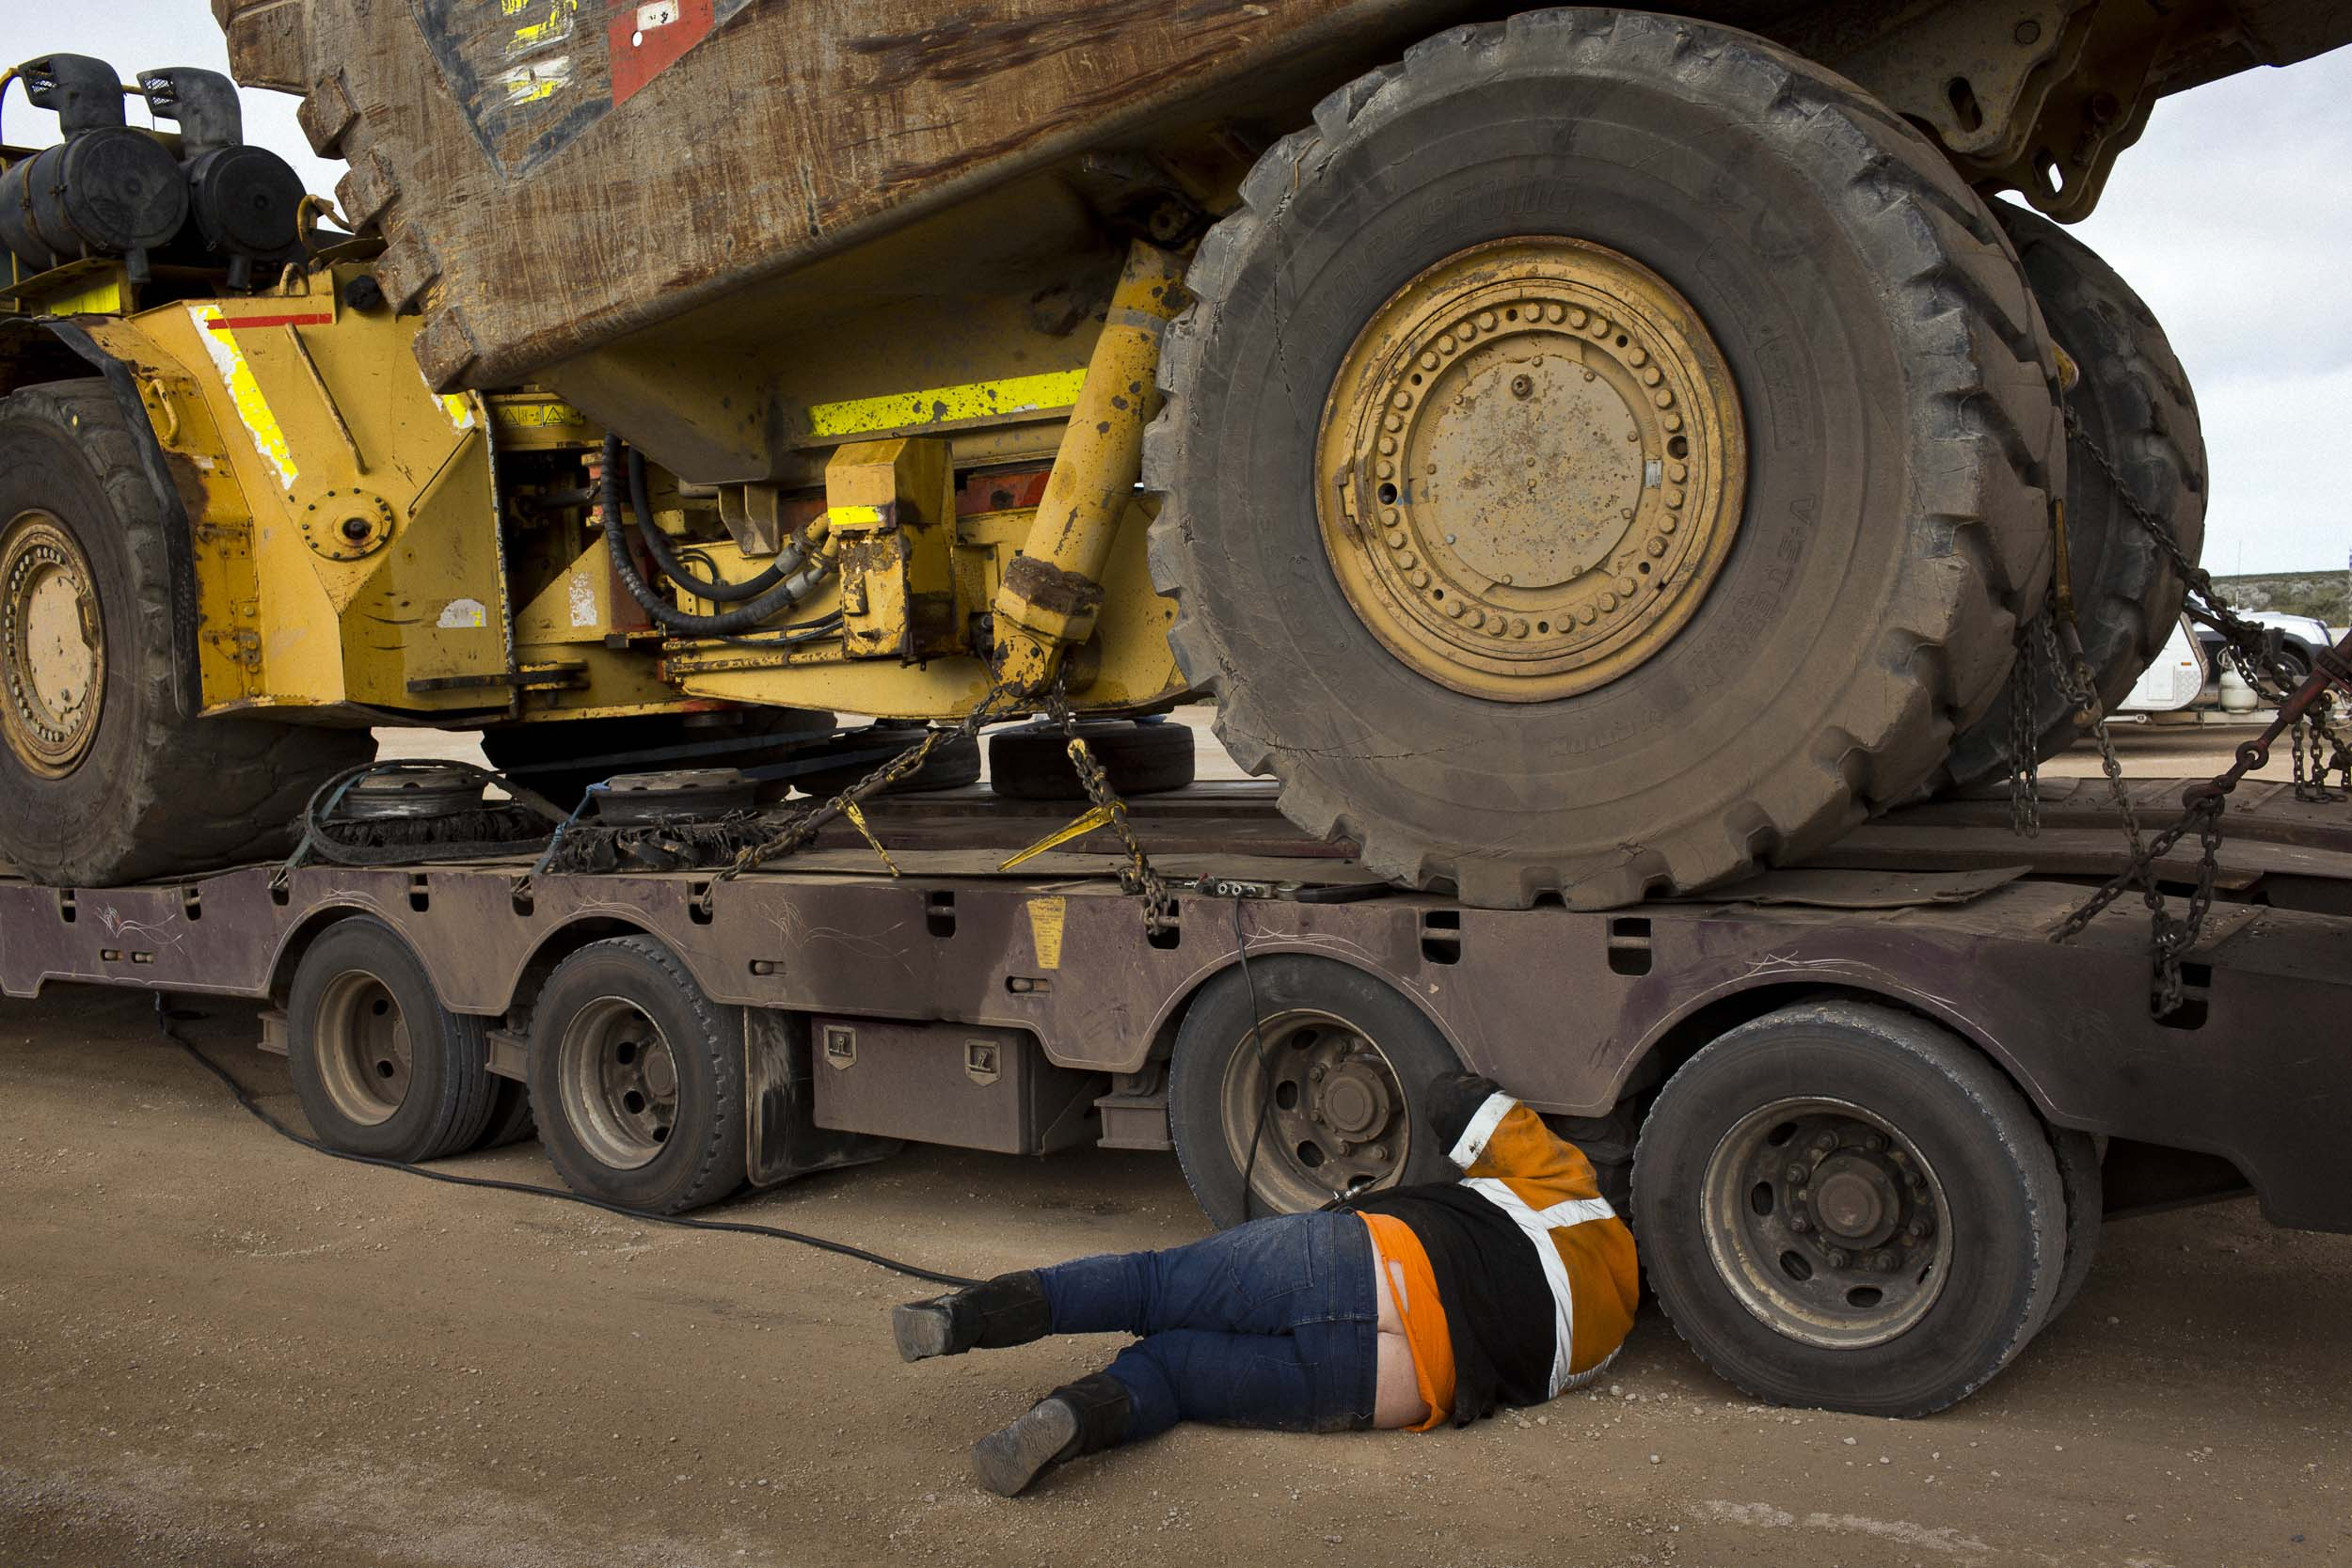 A truck driver inspects the tires on his trailer while stopped at the Nullarbor Roadhouse, Nullarbor, South Australia.